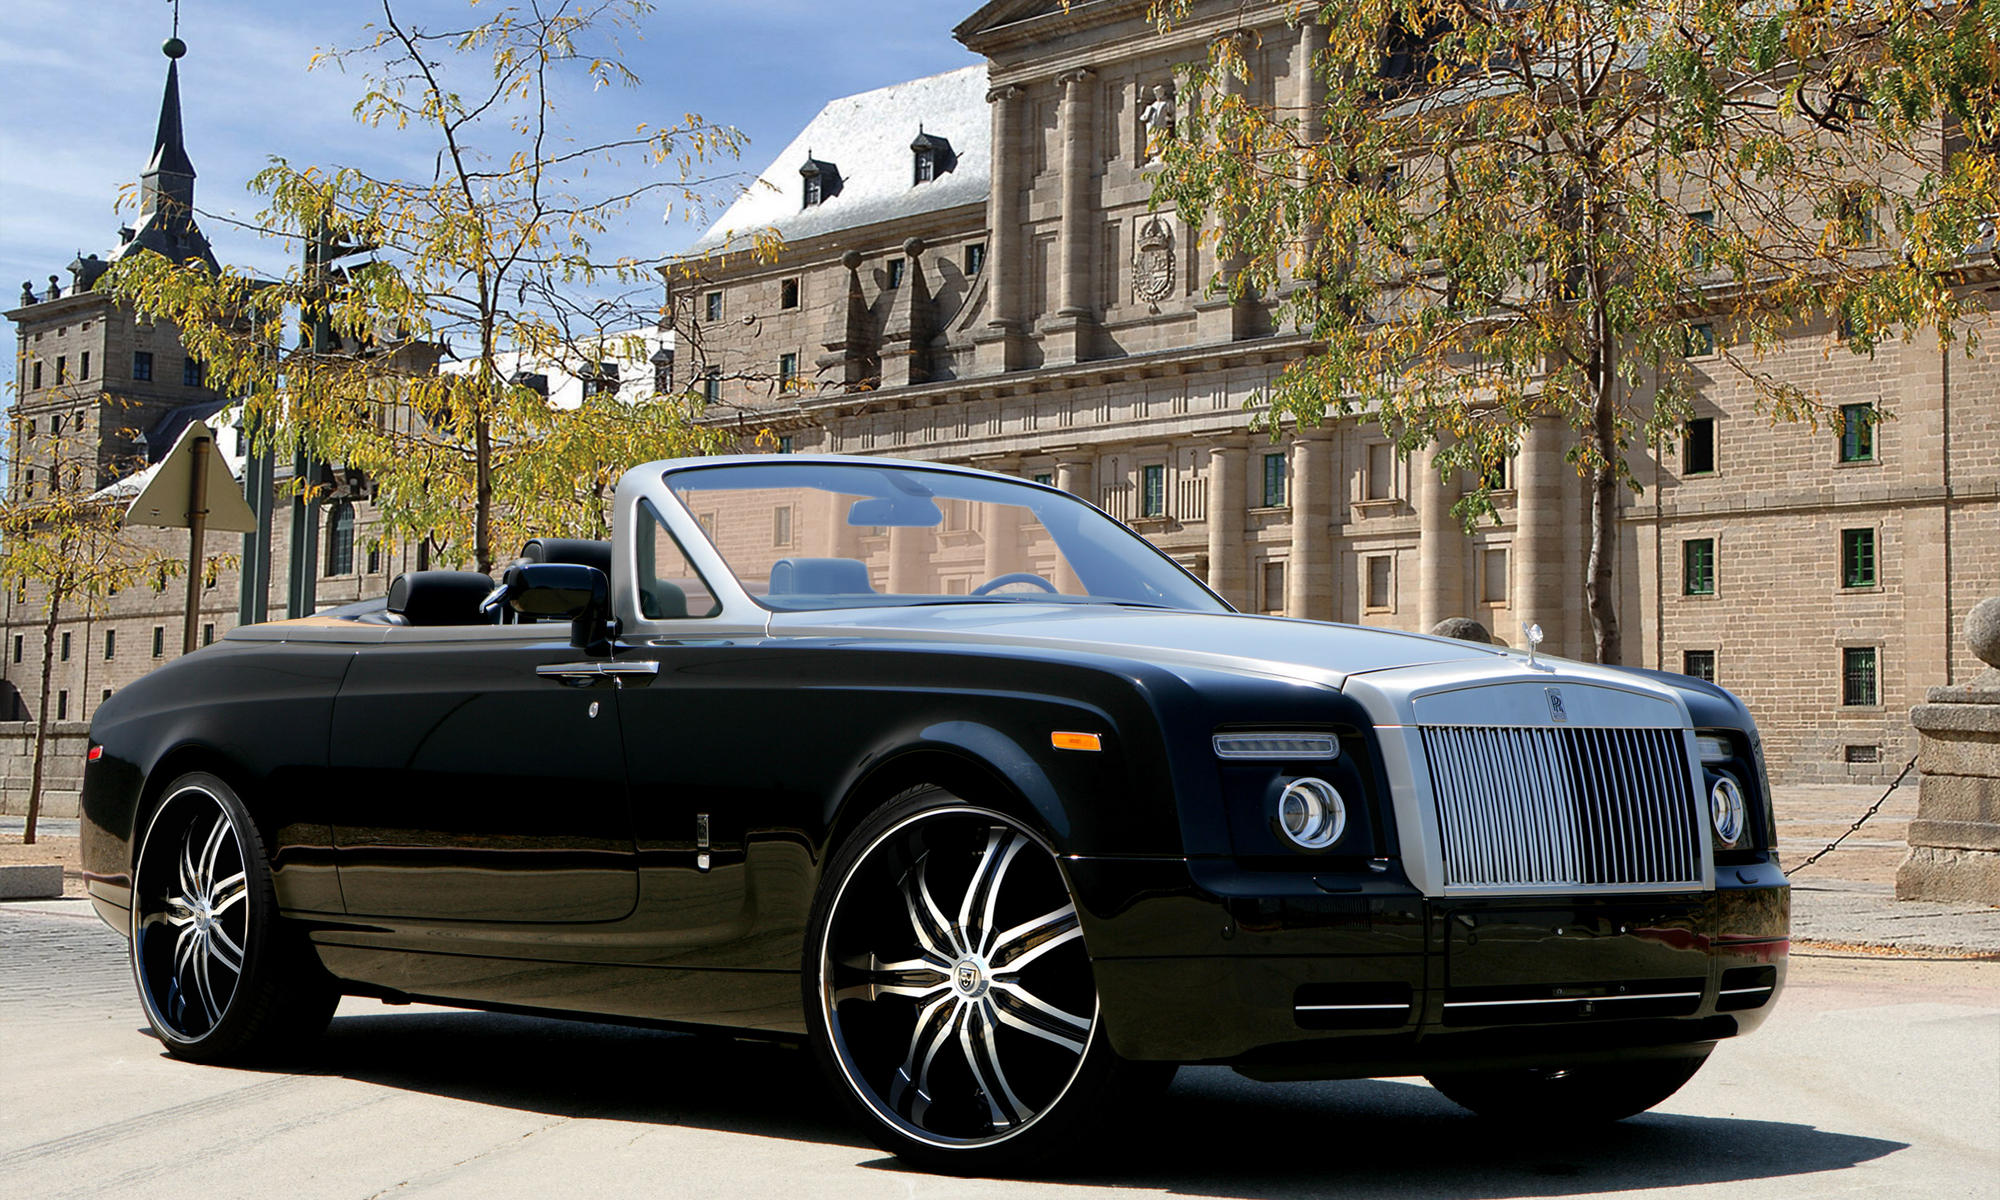 Rolls-Royce Phantom #7